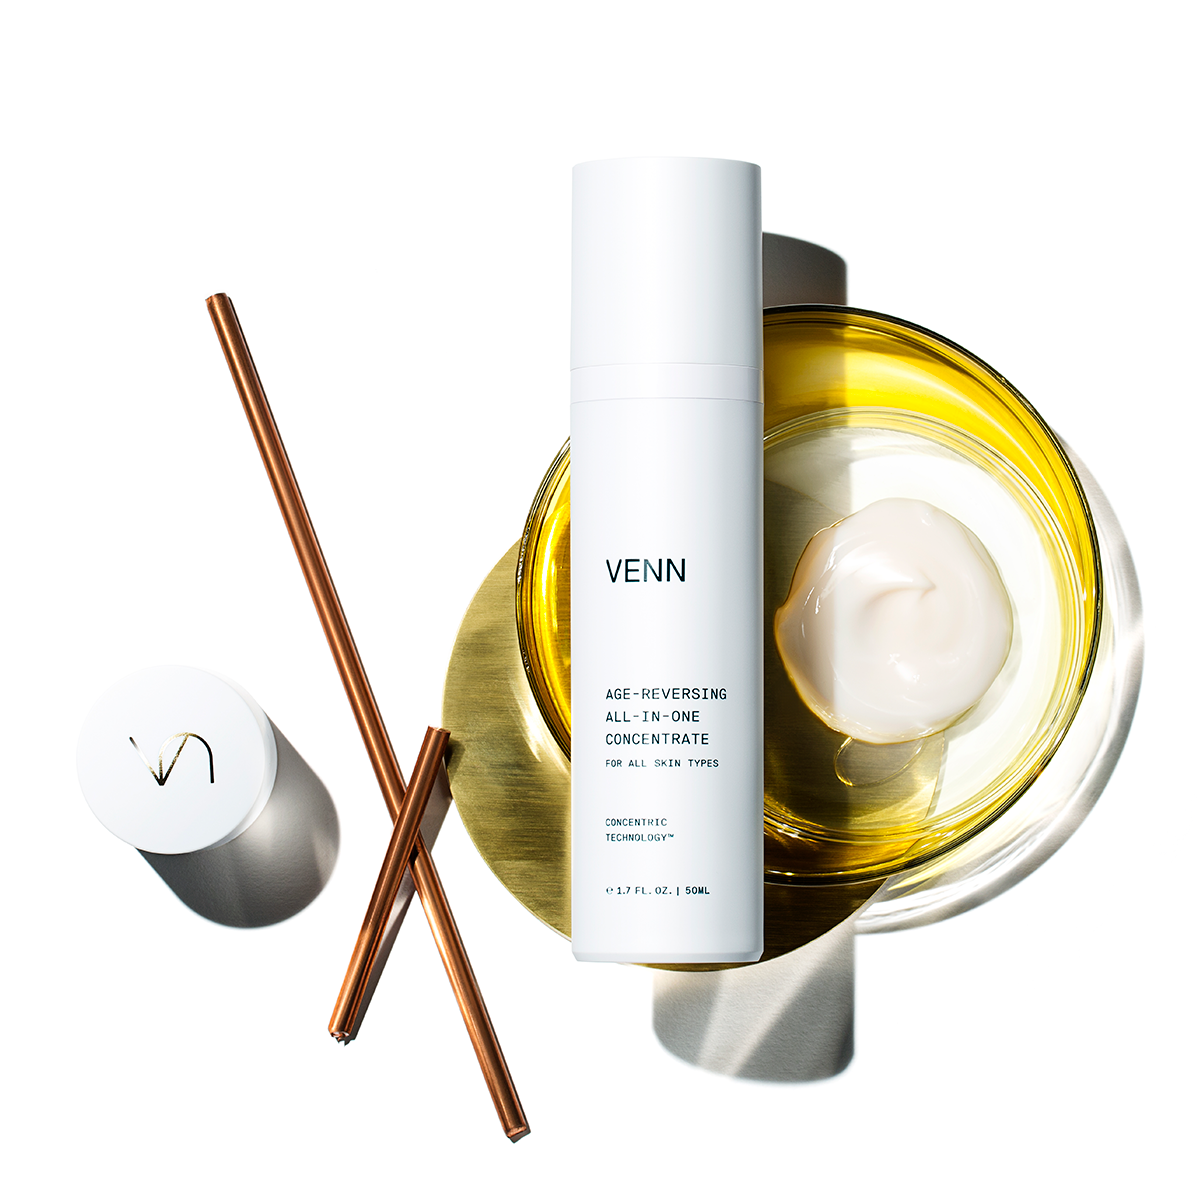 COMPREHENSIVE SKINCARE FOR MODERN LIFESTYLE